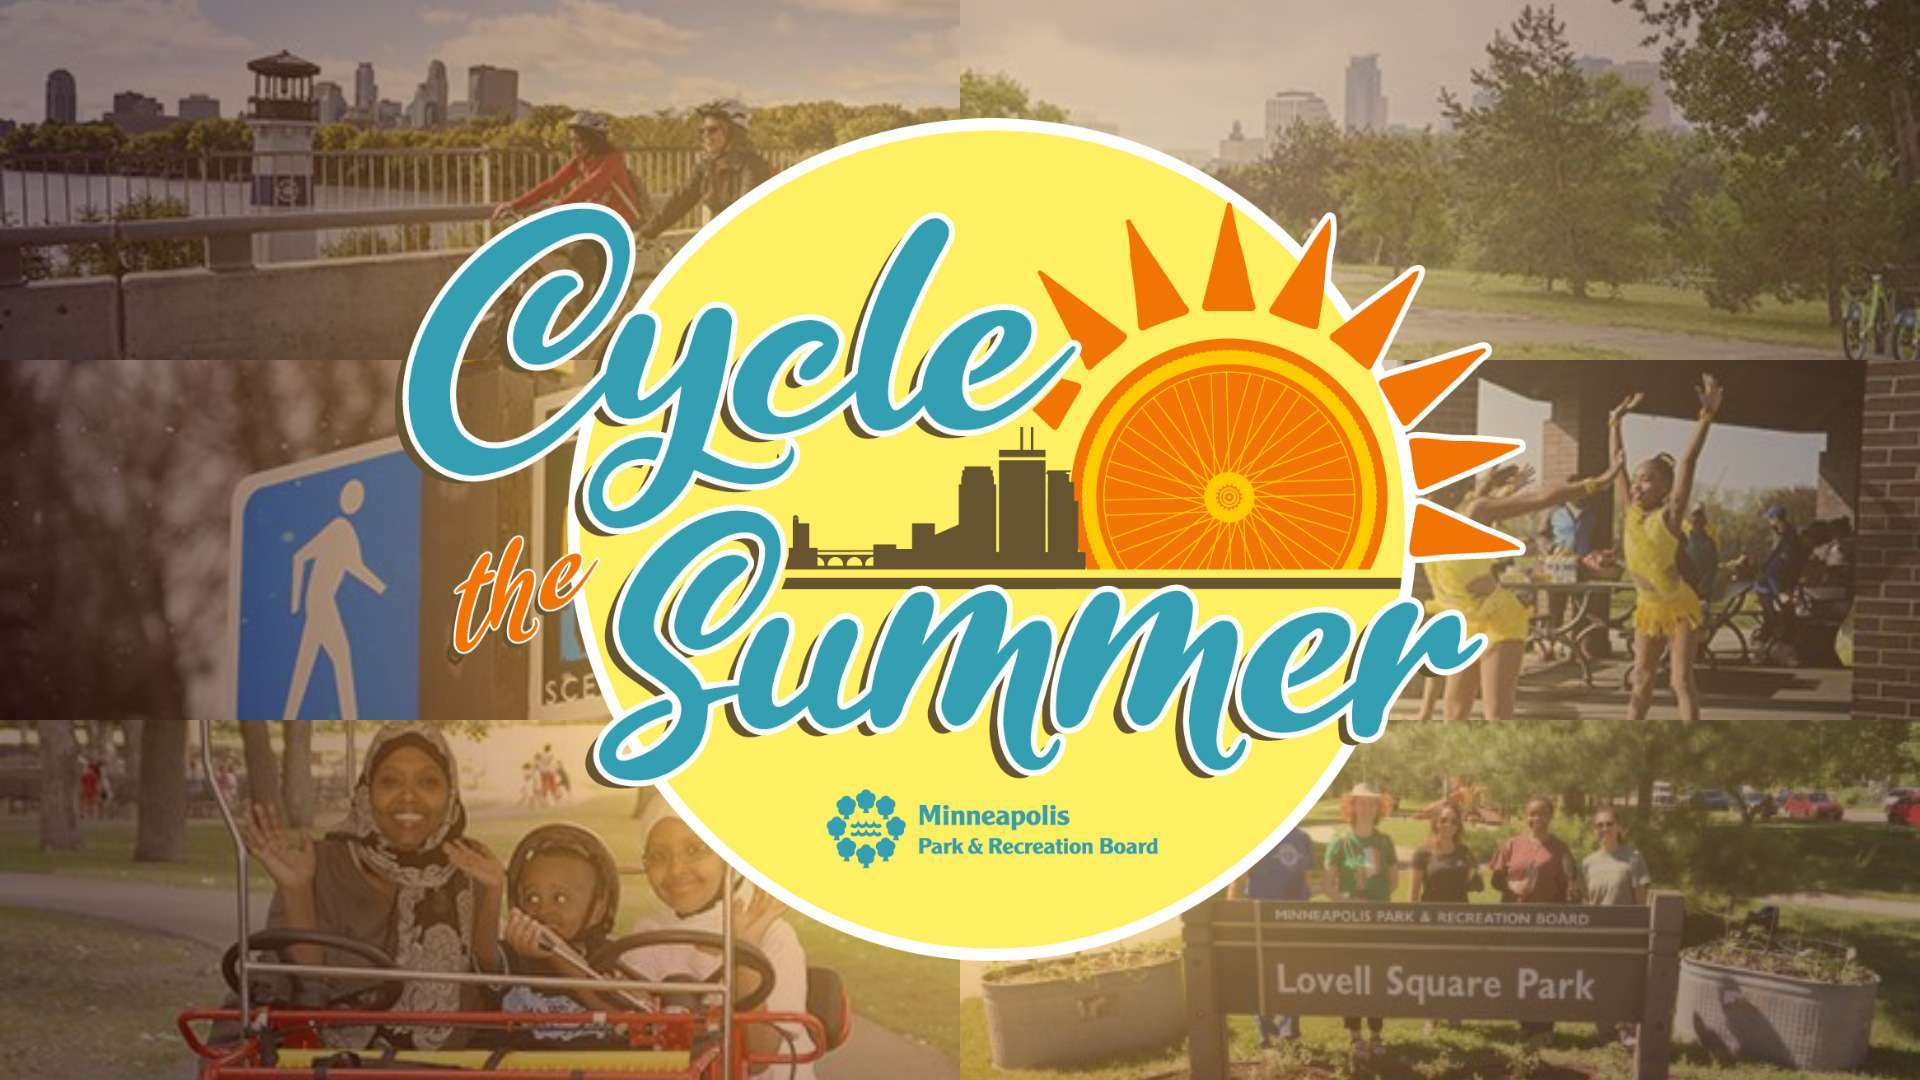 Poster for the Cycle the Summer Series of events by Minneapolis Parks and Recreation